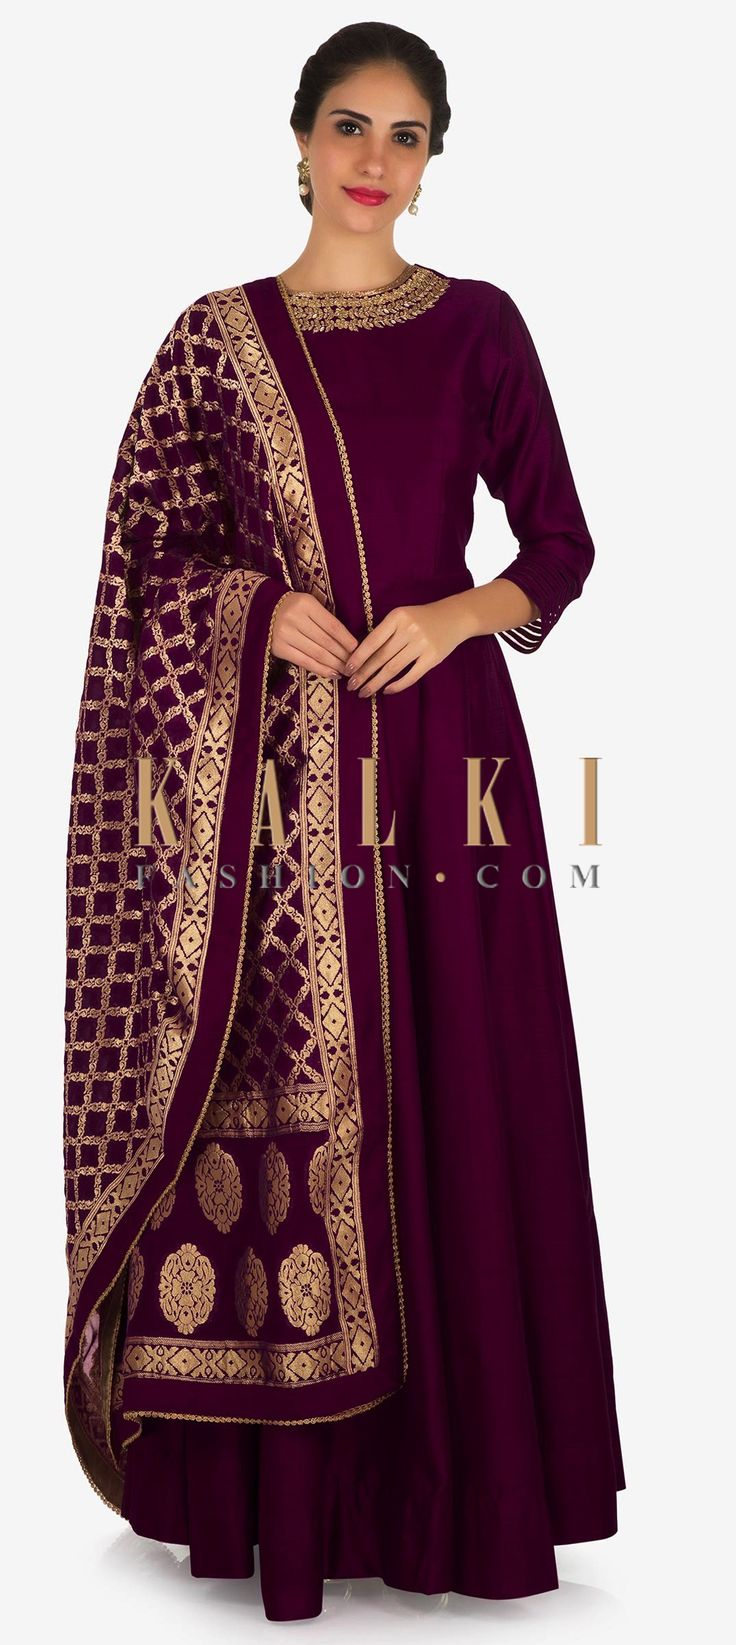 Buy Online from the link below. We ship worldwide Click Anywhere to Tag Magenta anarkali suit in silk with a banarasi brocade dupatta adorn in cutdana and kundan work only on Kalki